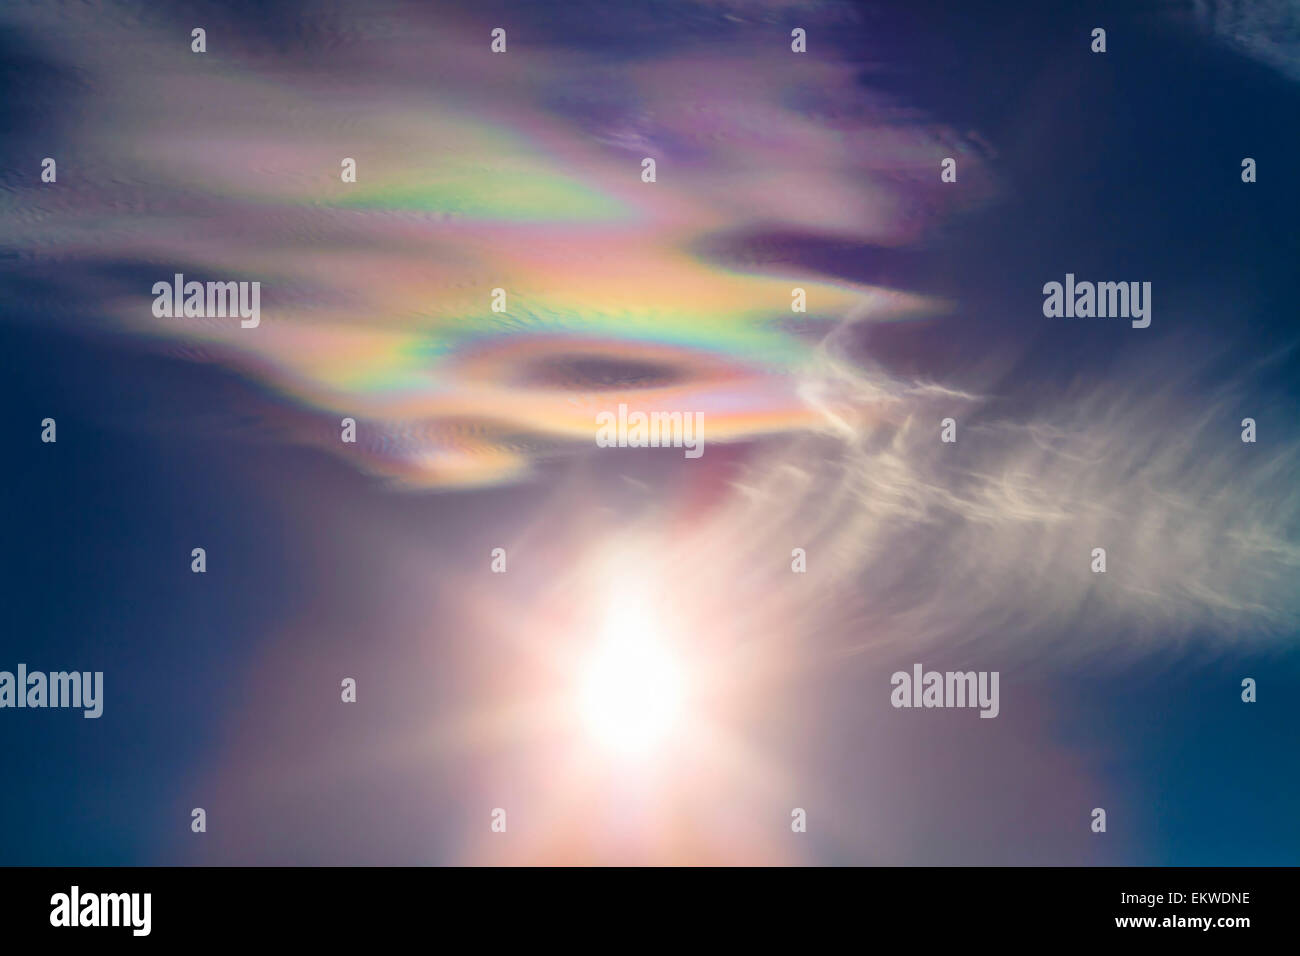 December 10, 2013 - Iridescent clouds near the Sun, taken from White Sands National Monument, New Mexico prior to - Stock Image